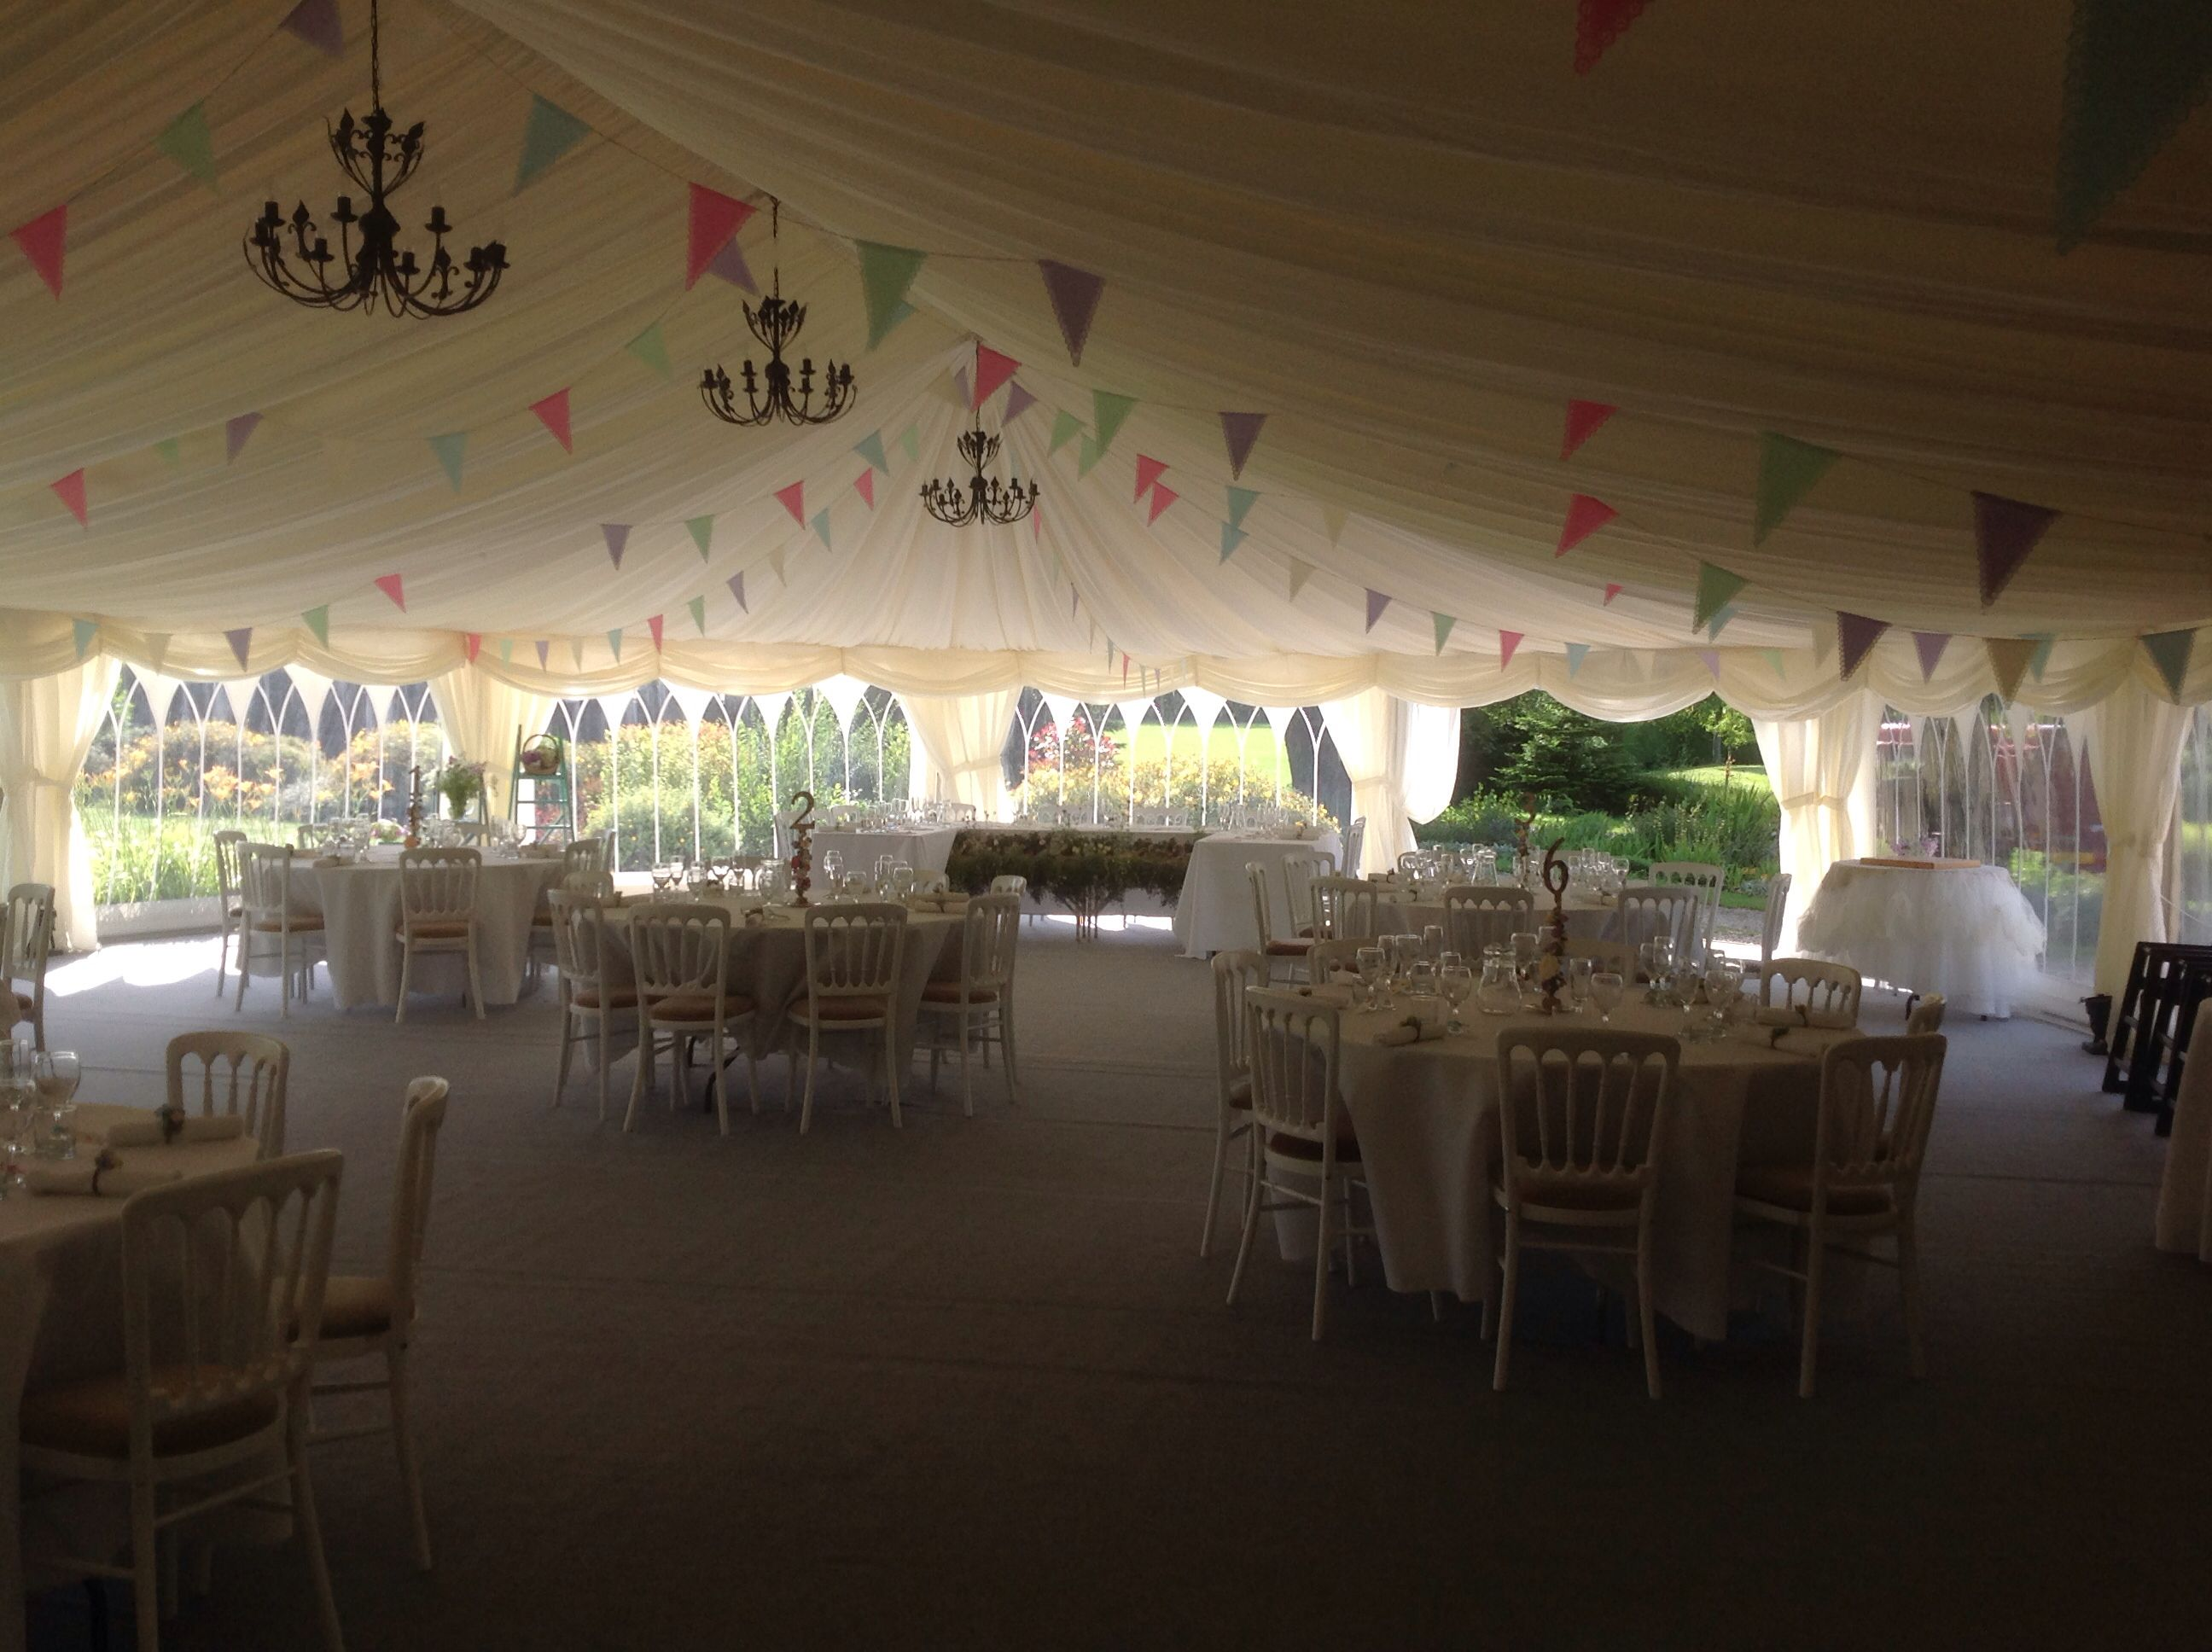 Hand made paper bunting. Choose darker shades for impact